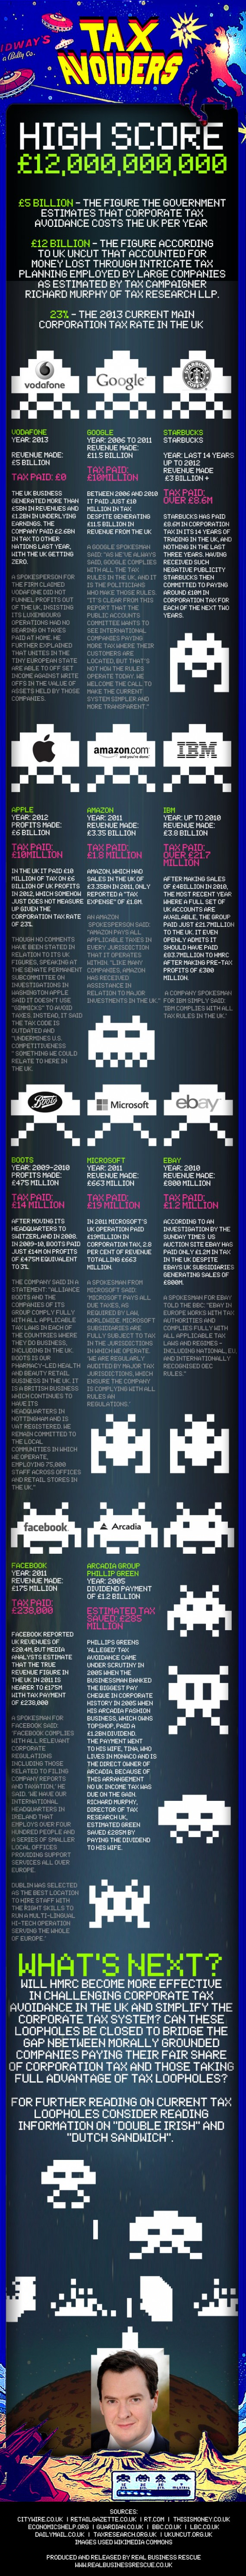 Tax evasion - space invaders infographic